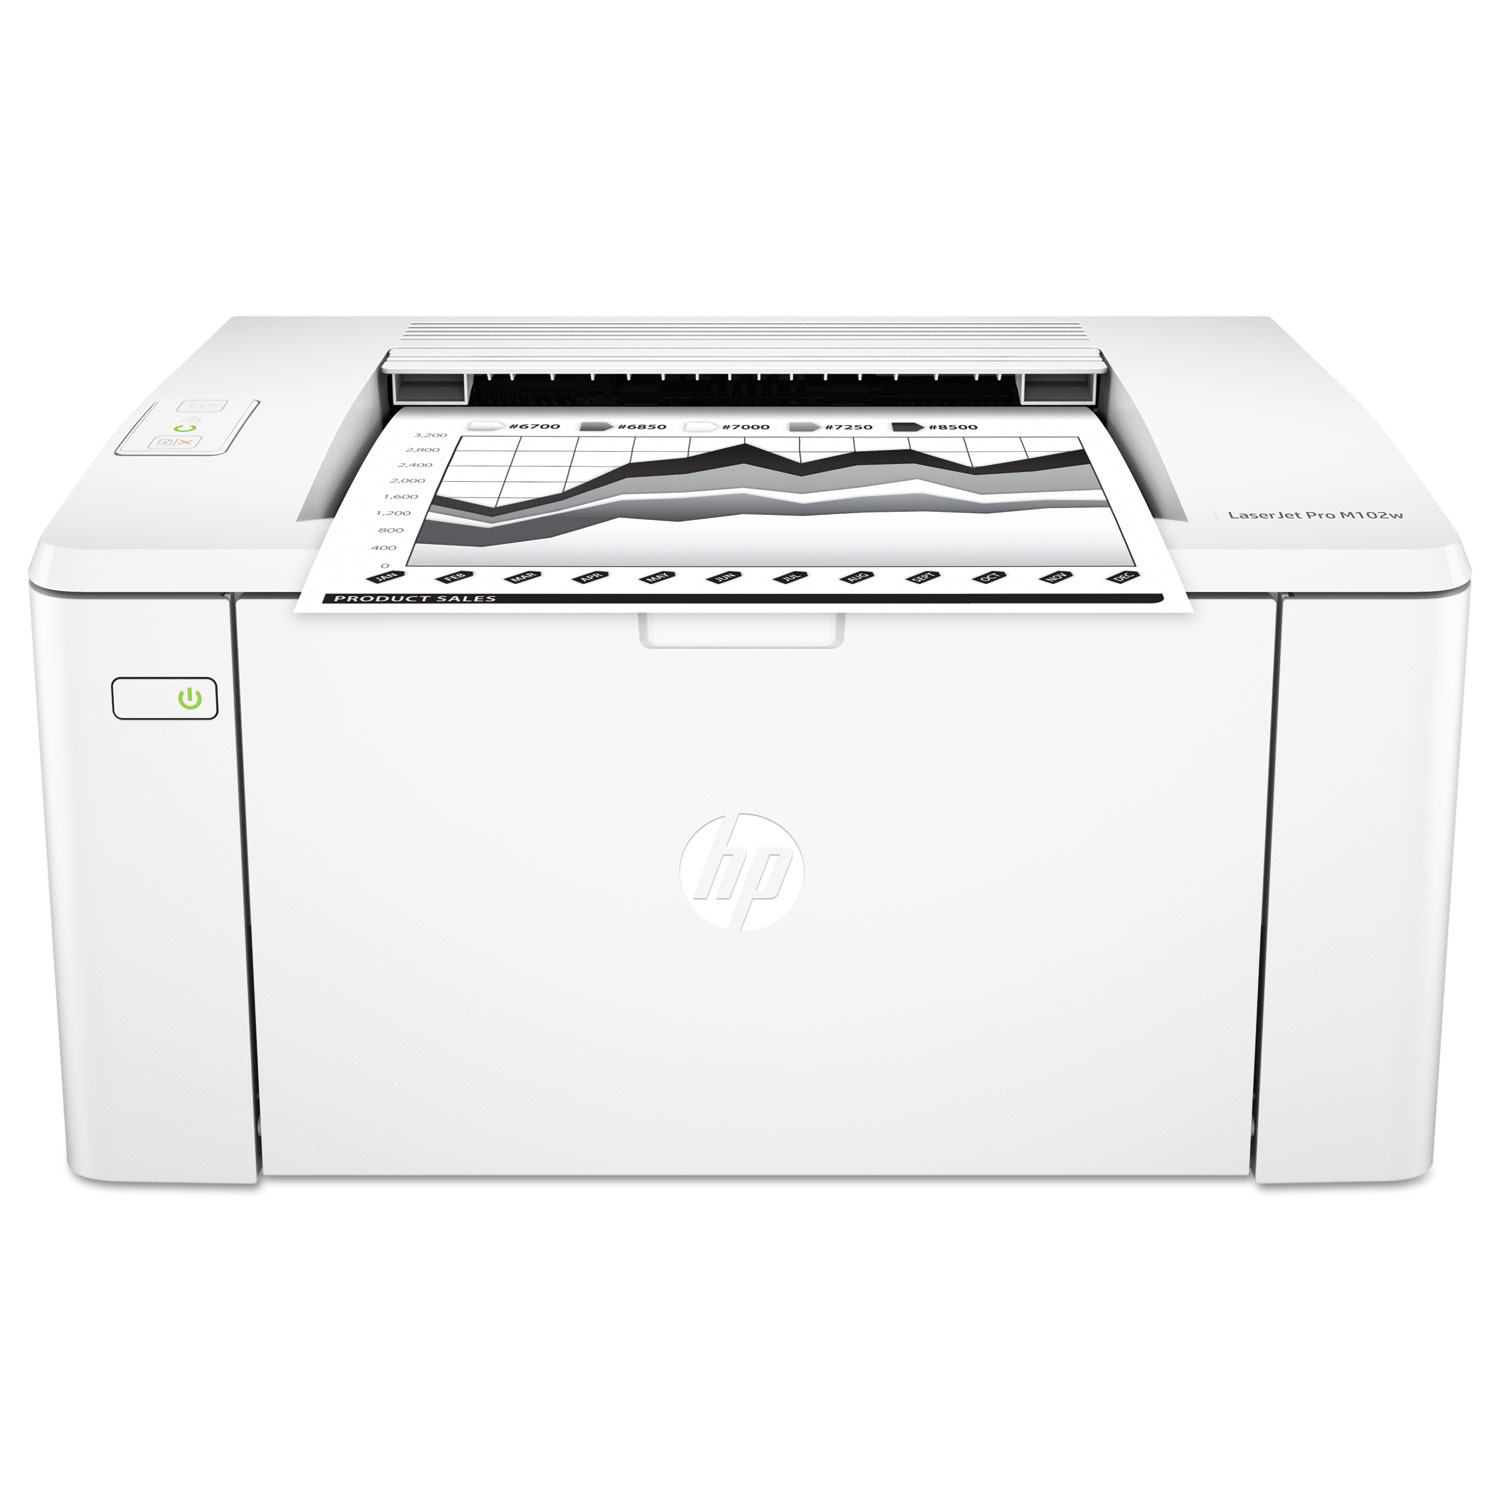 LaserJet Pro M102w Wireless Laser Printer